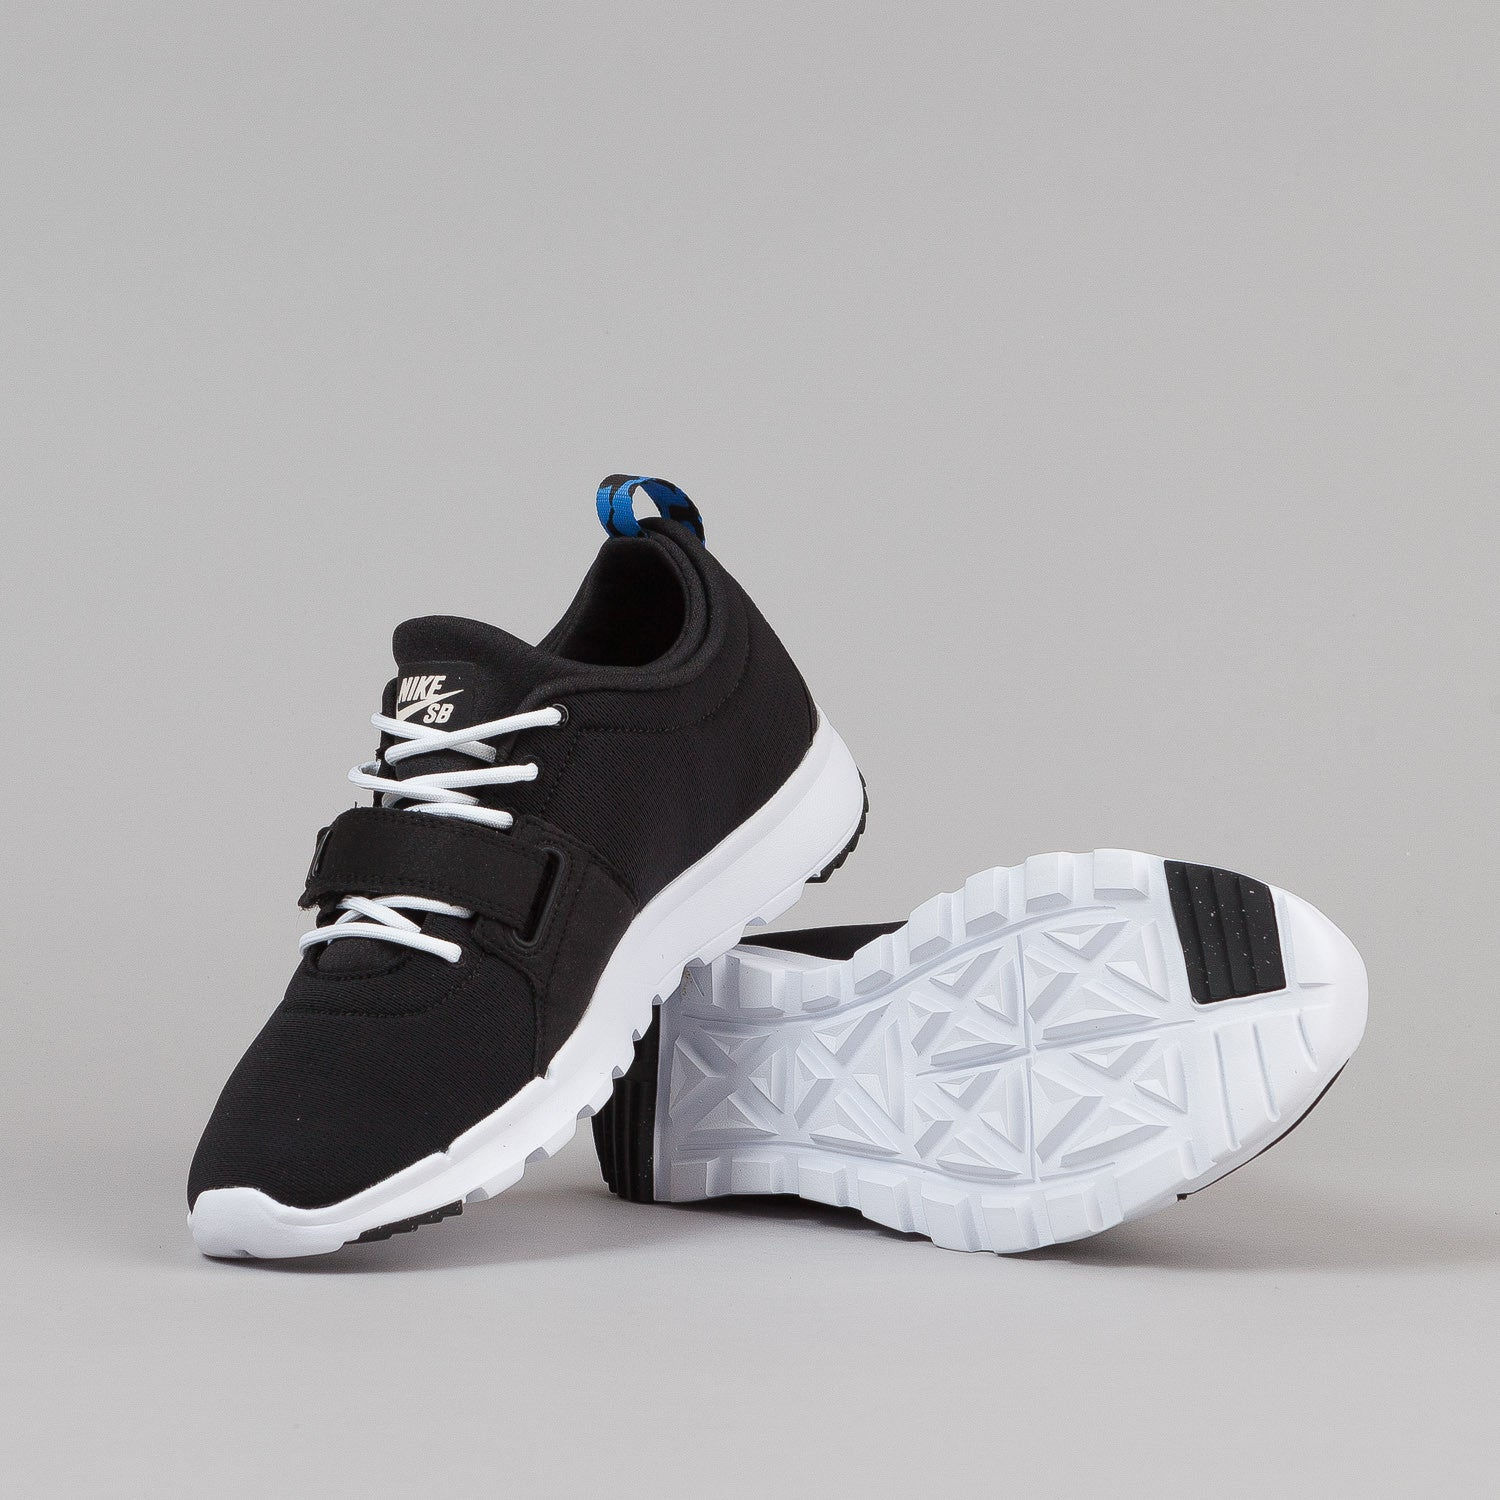 Nike SB Trainerendor SE Shoes - Black / White / Distinct Blue